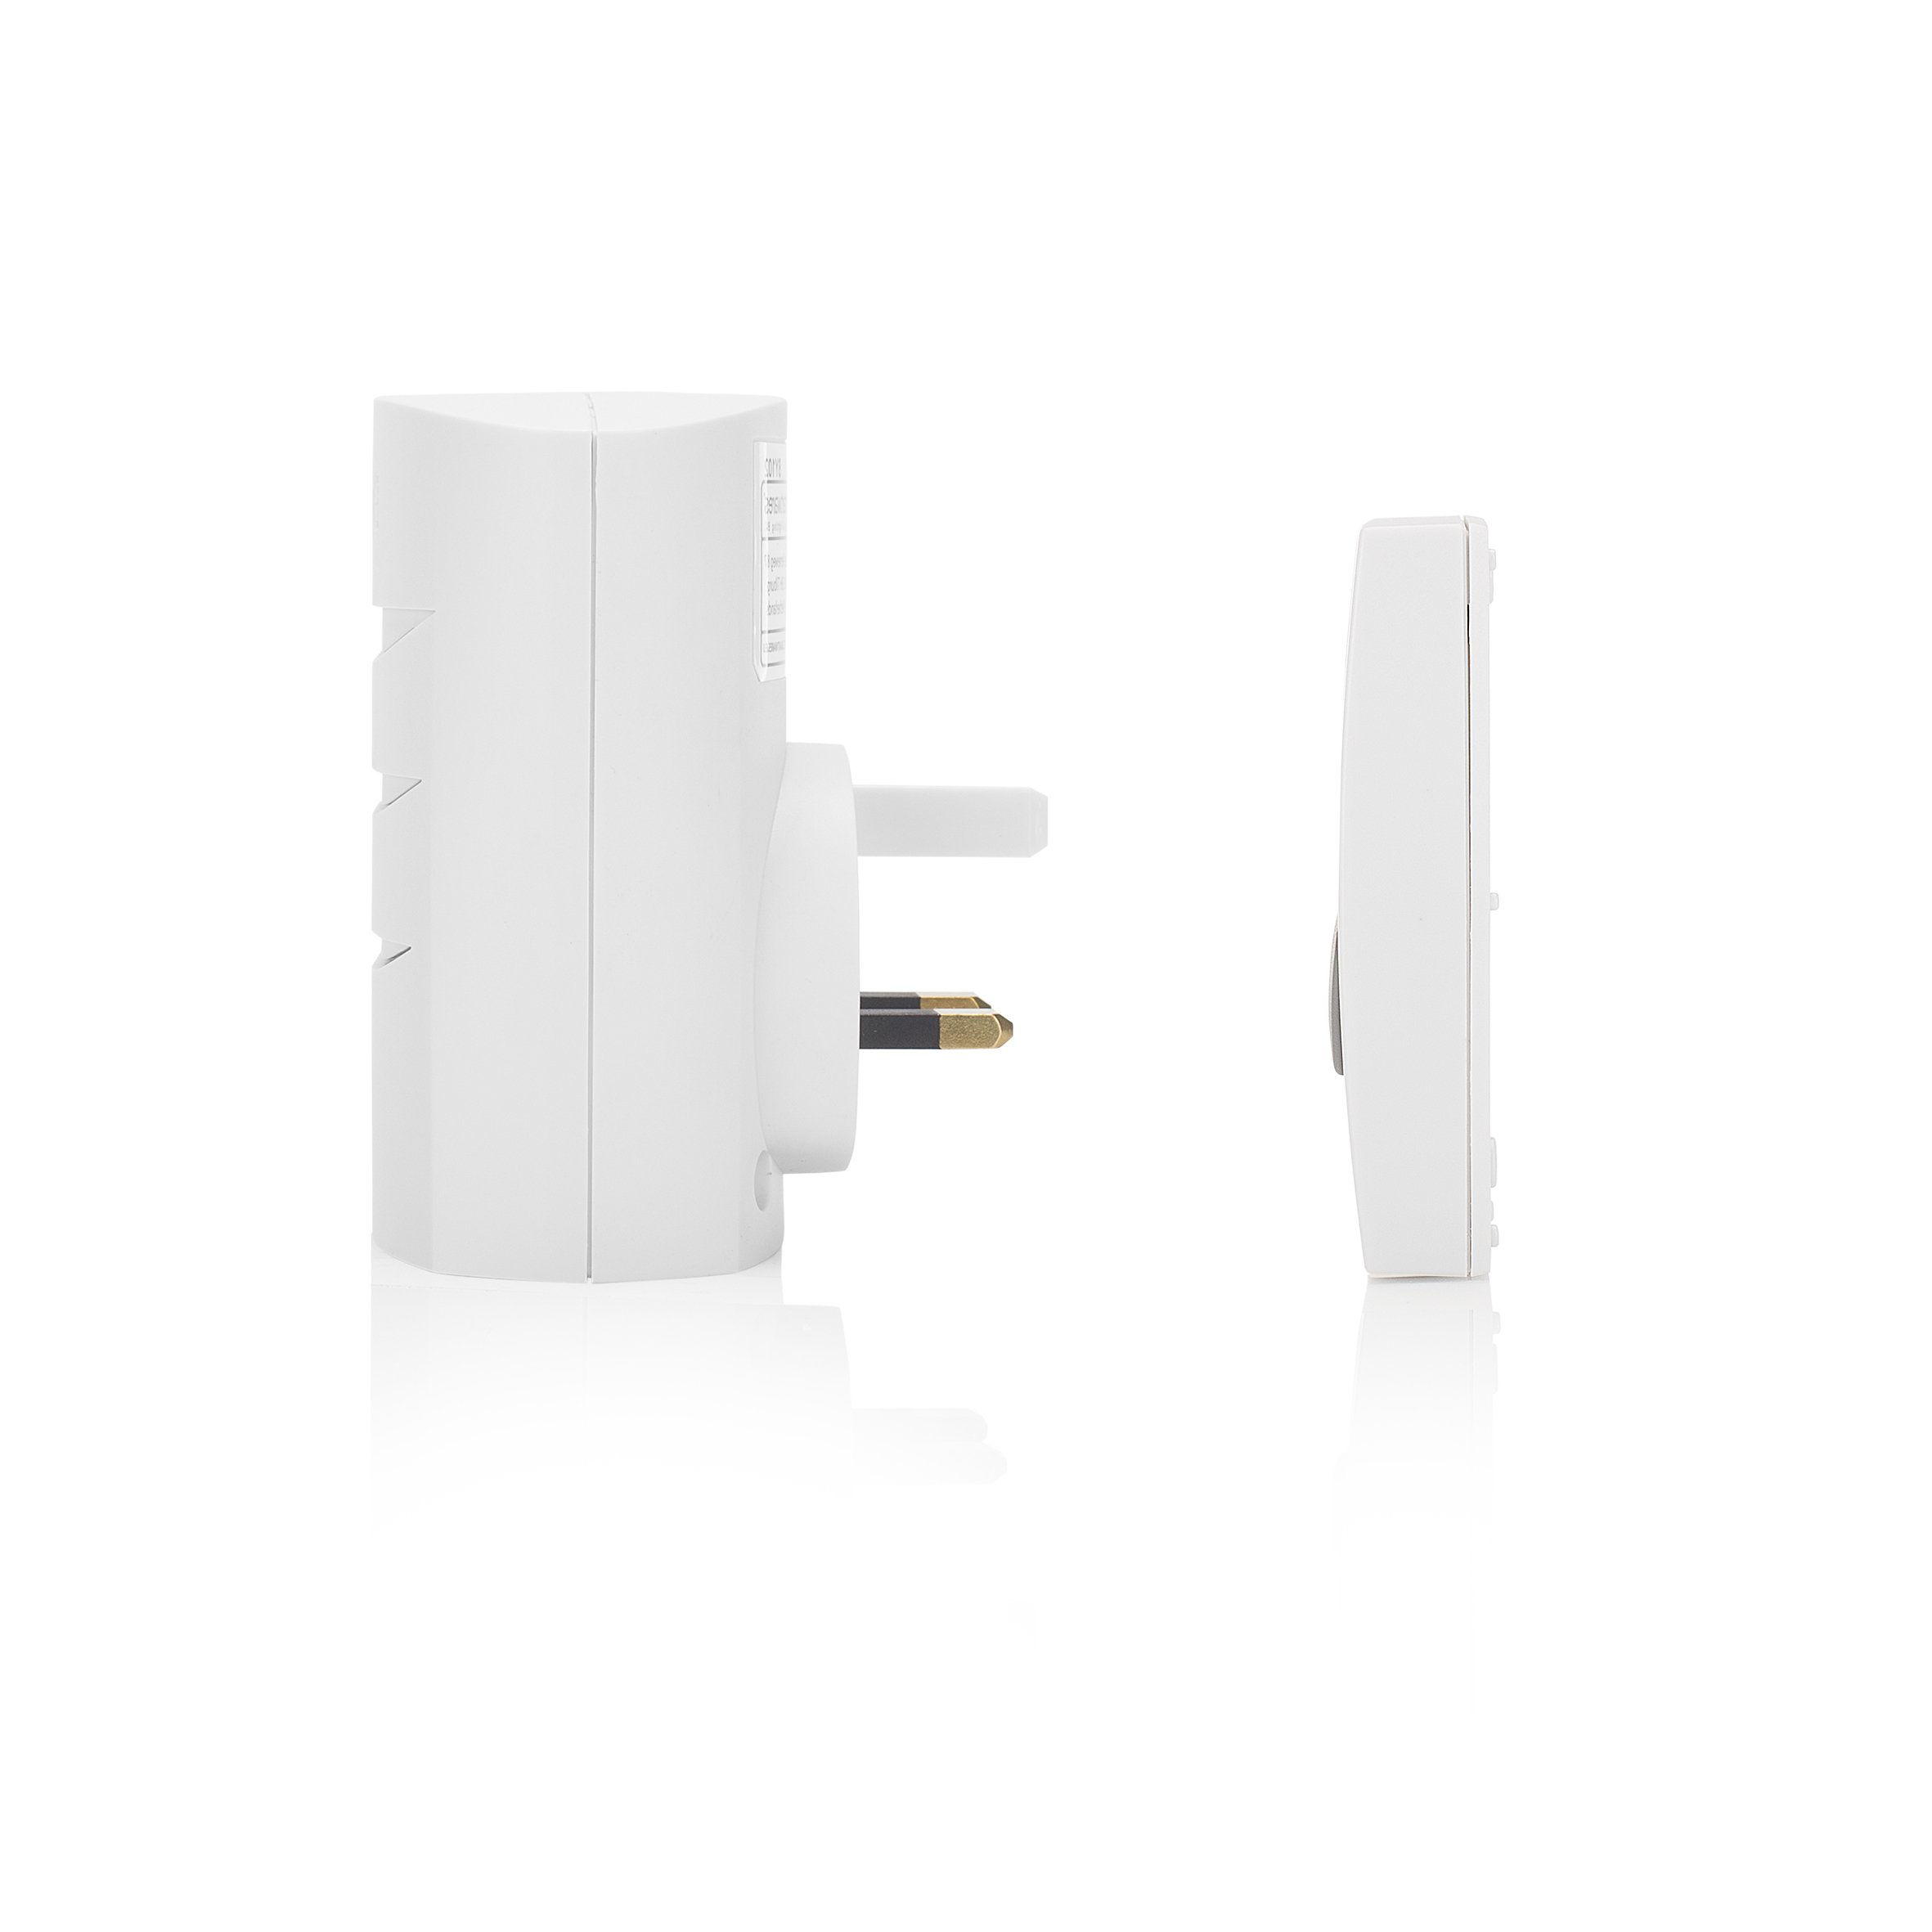 Byron DB303 30m Wireless Plug-Through Door Chime Kit with 1 Sound